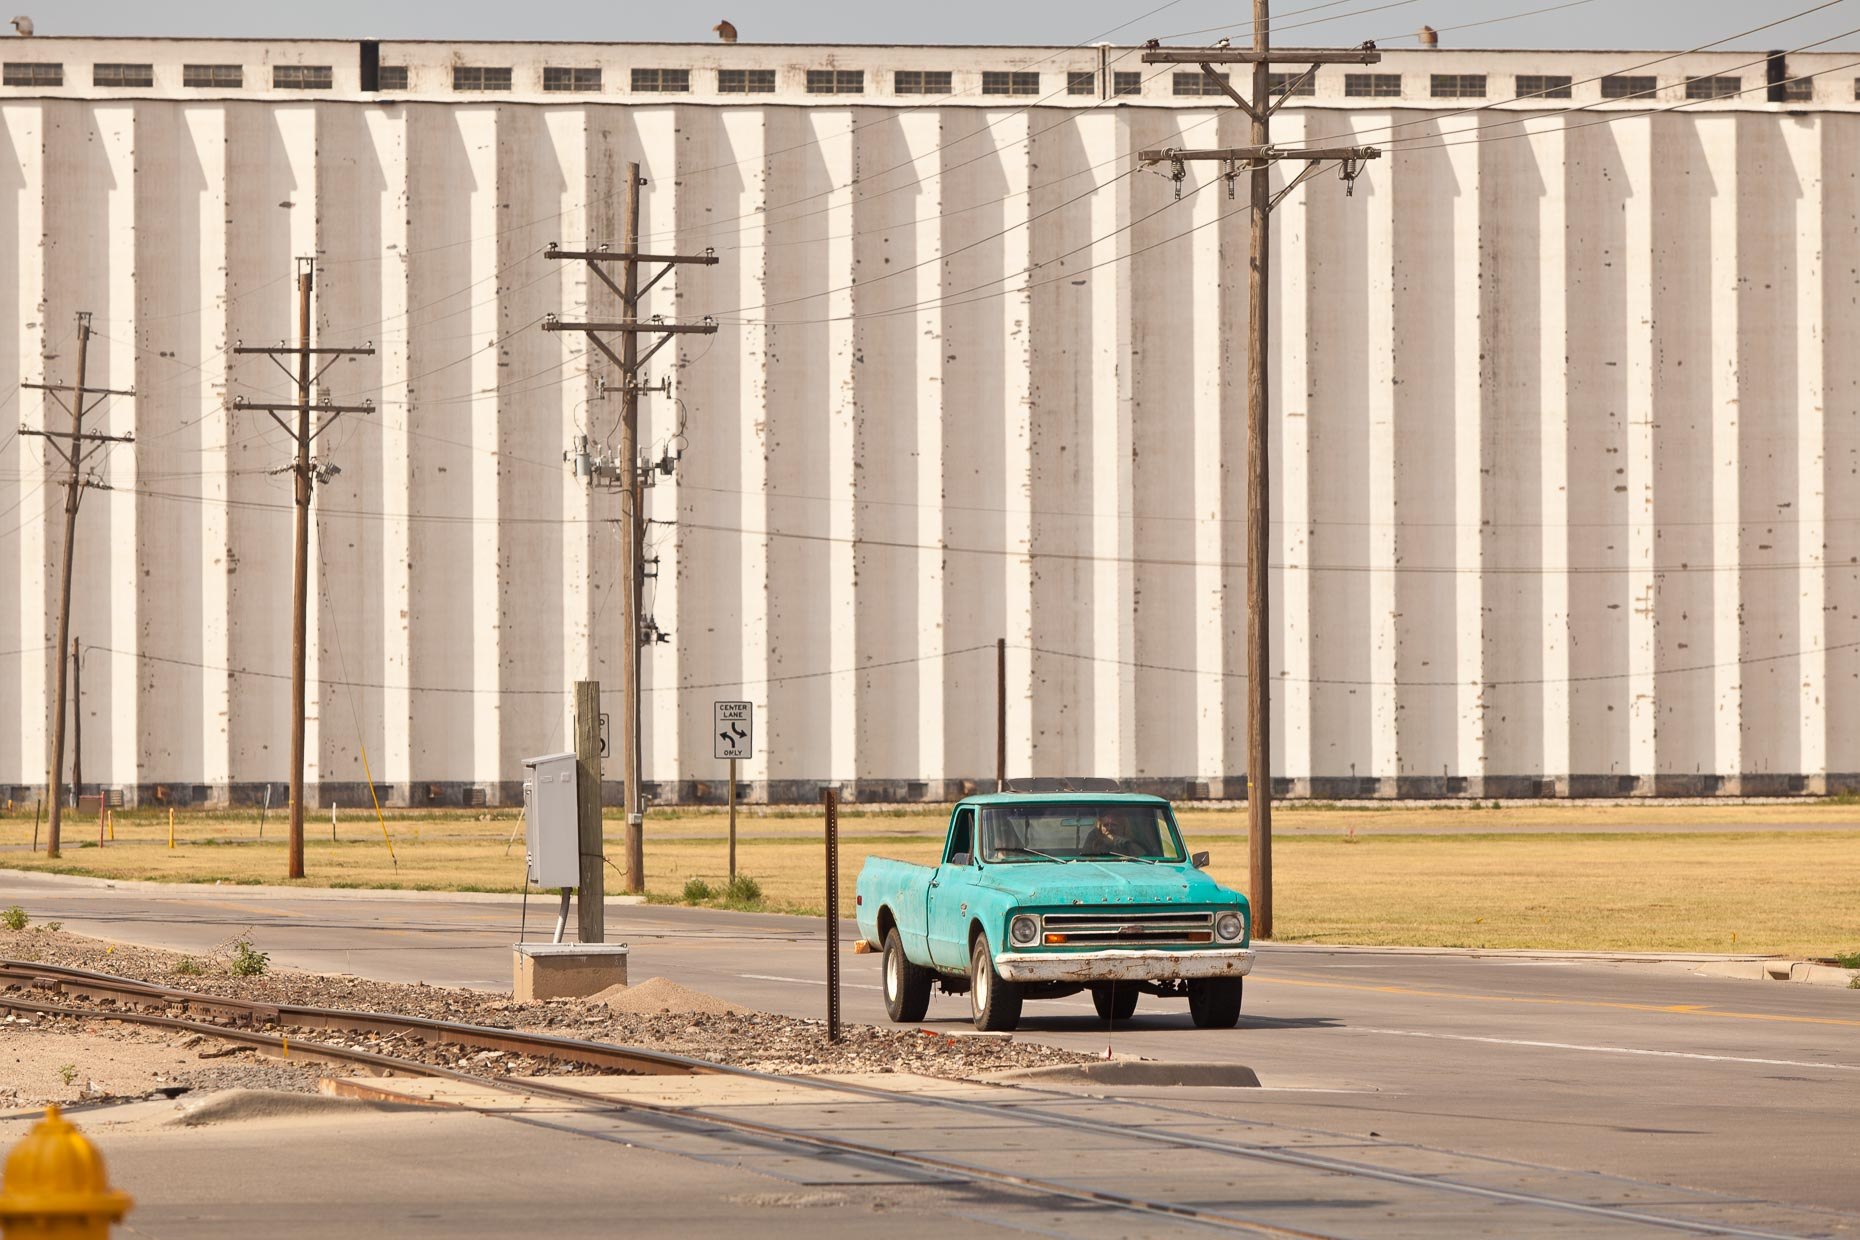 Green pickup truck driving on road with grain elevators in background by David Zaitz